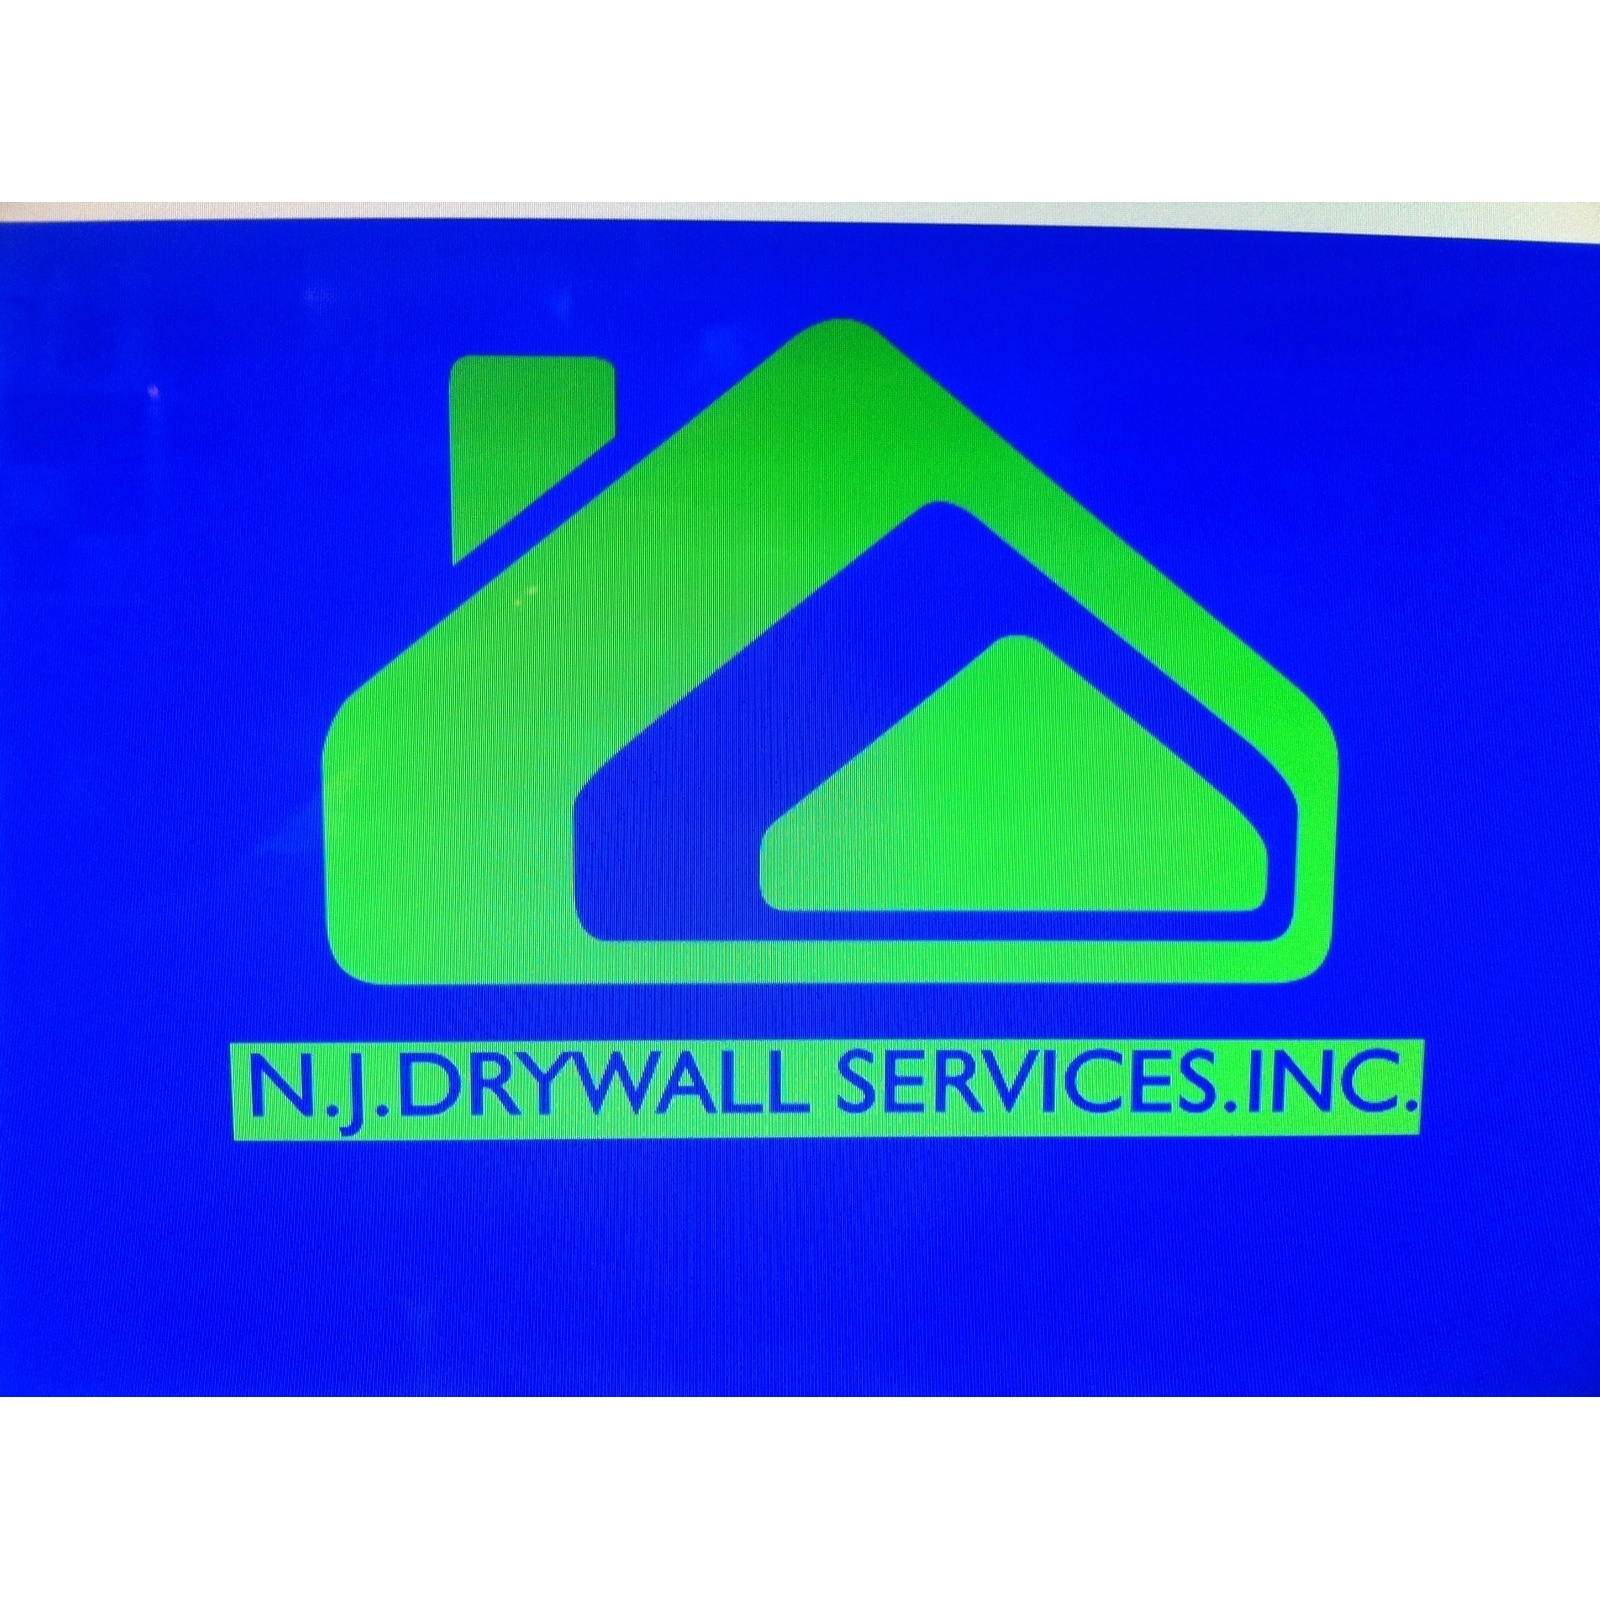 N.J. Drywall Services Corp.